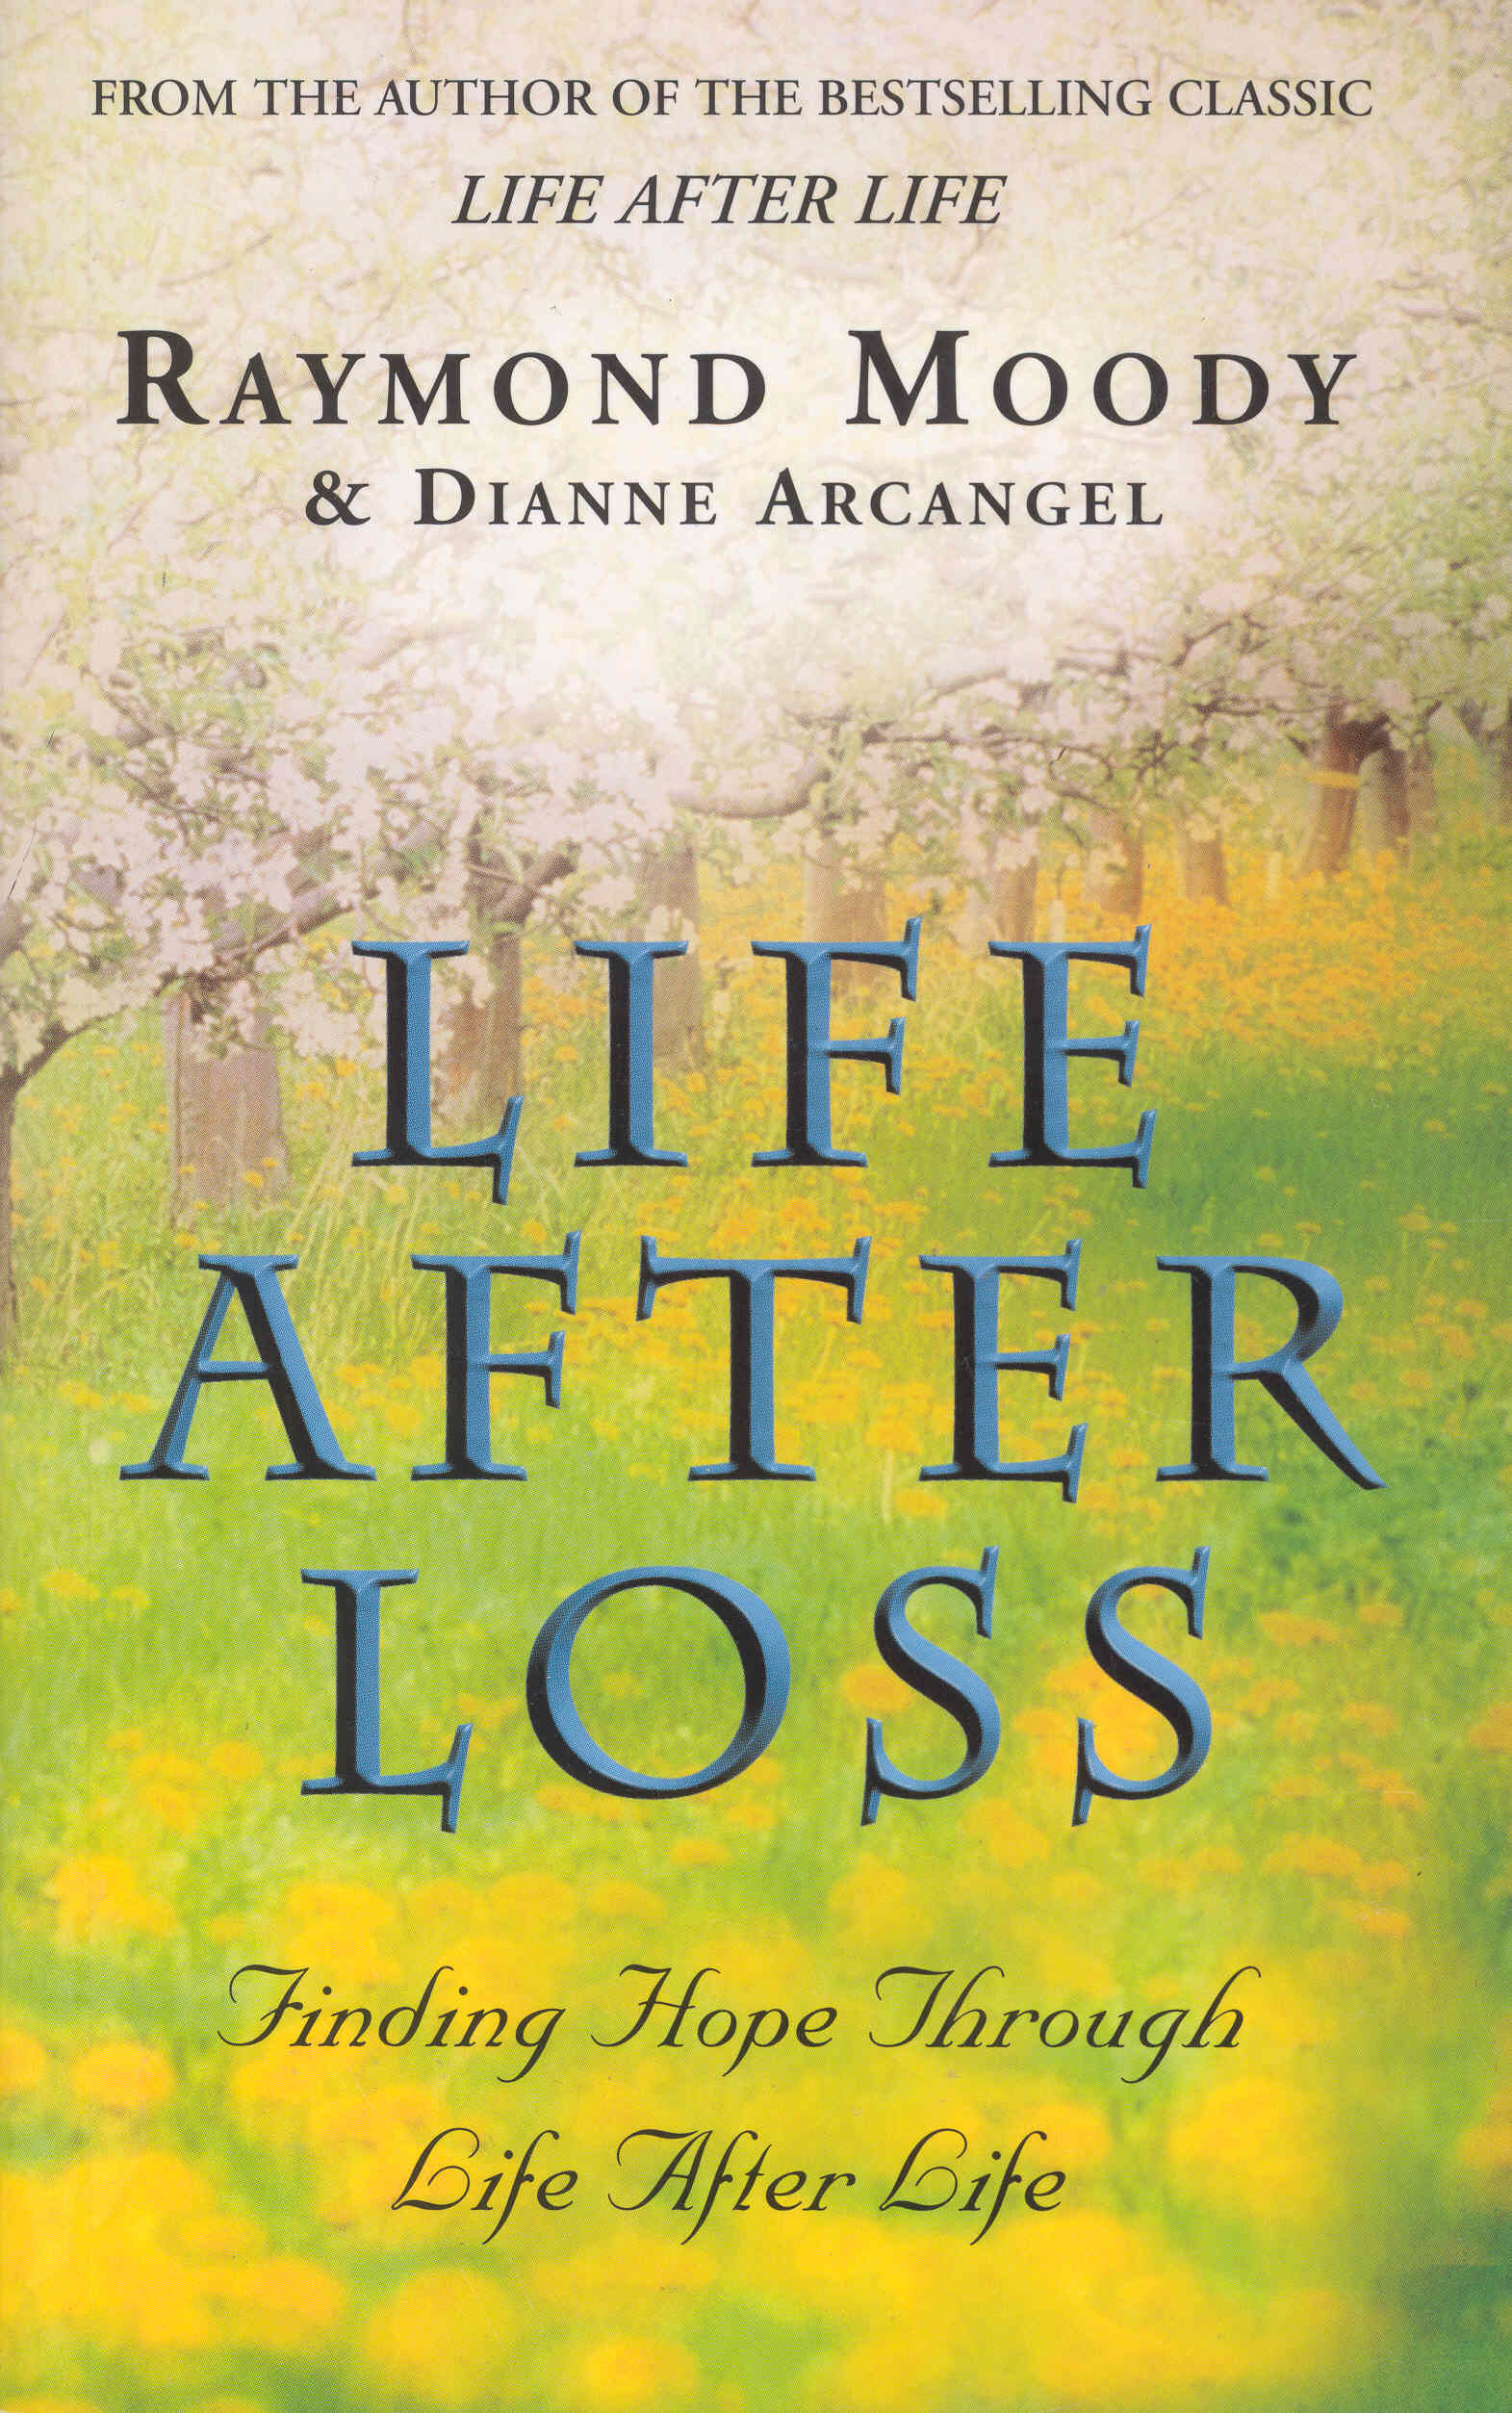 Life After Loss